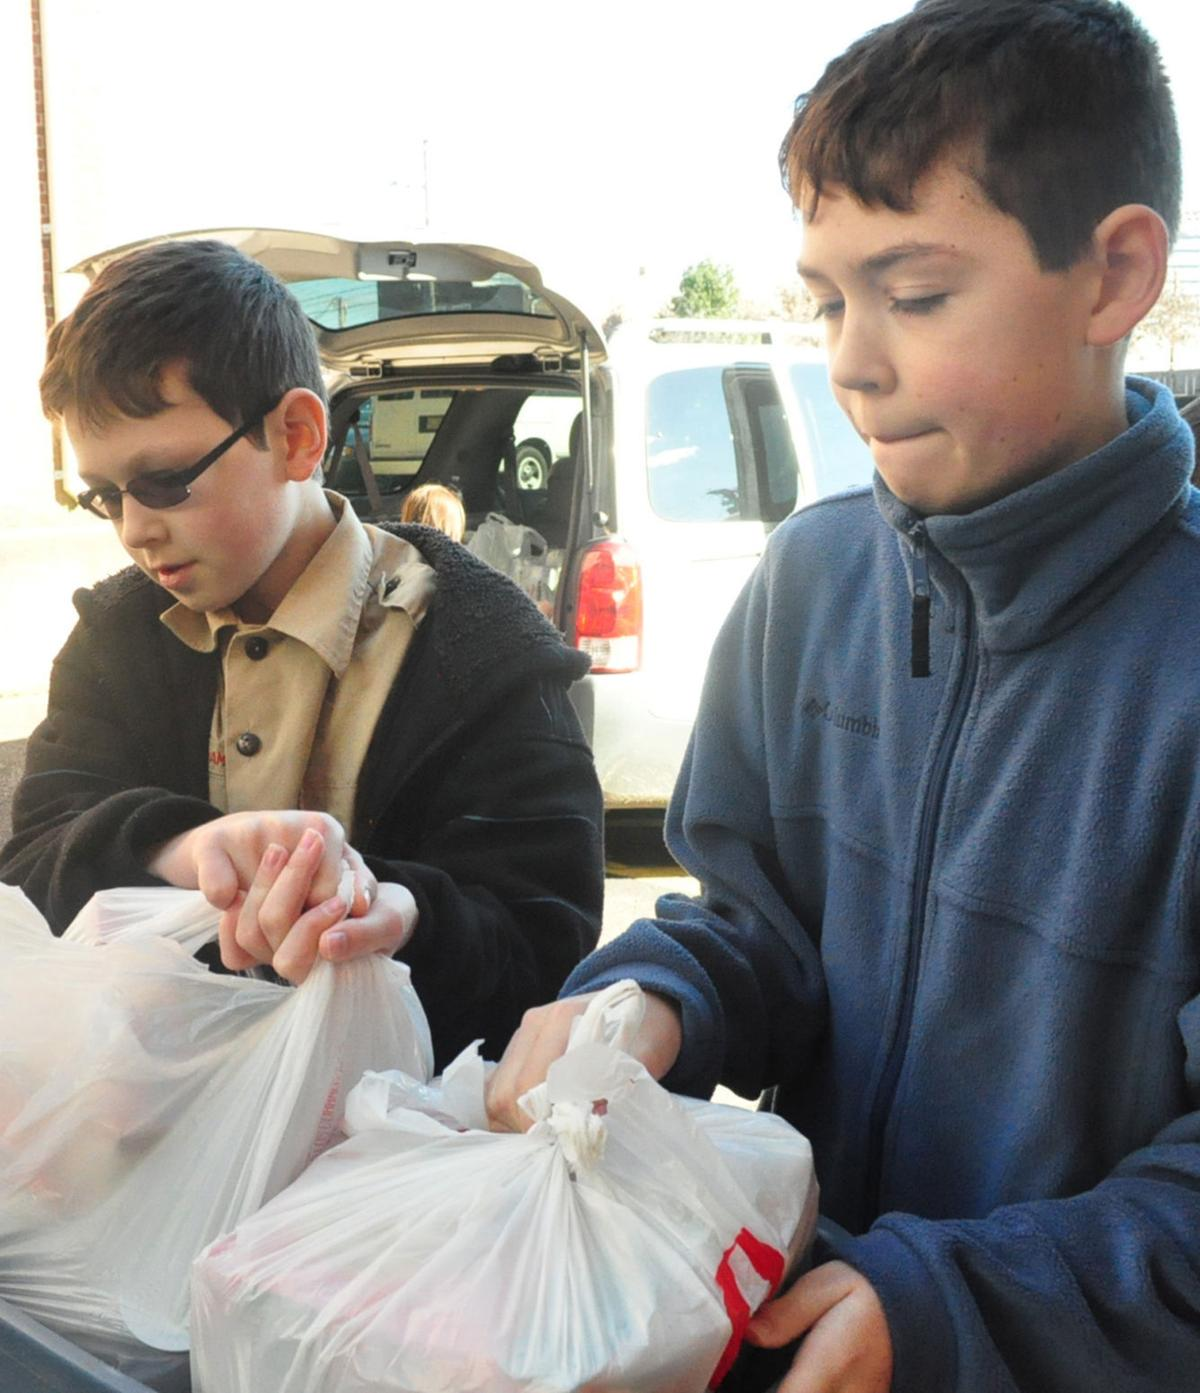 Annual Scouting For Food Drive To Kickoff Saturday News Dailyprogress Com